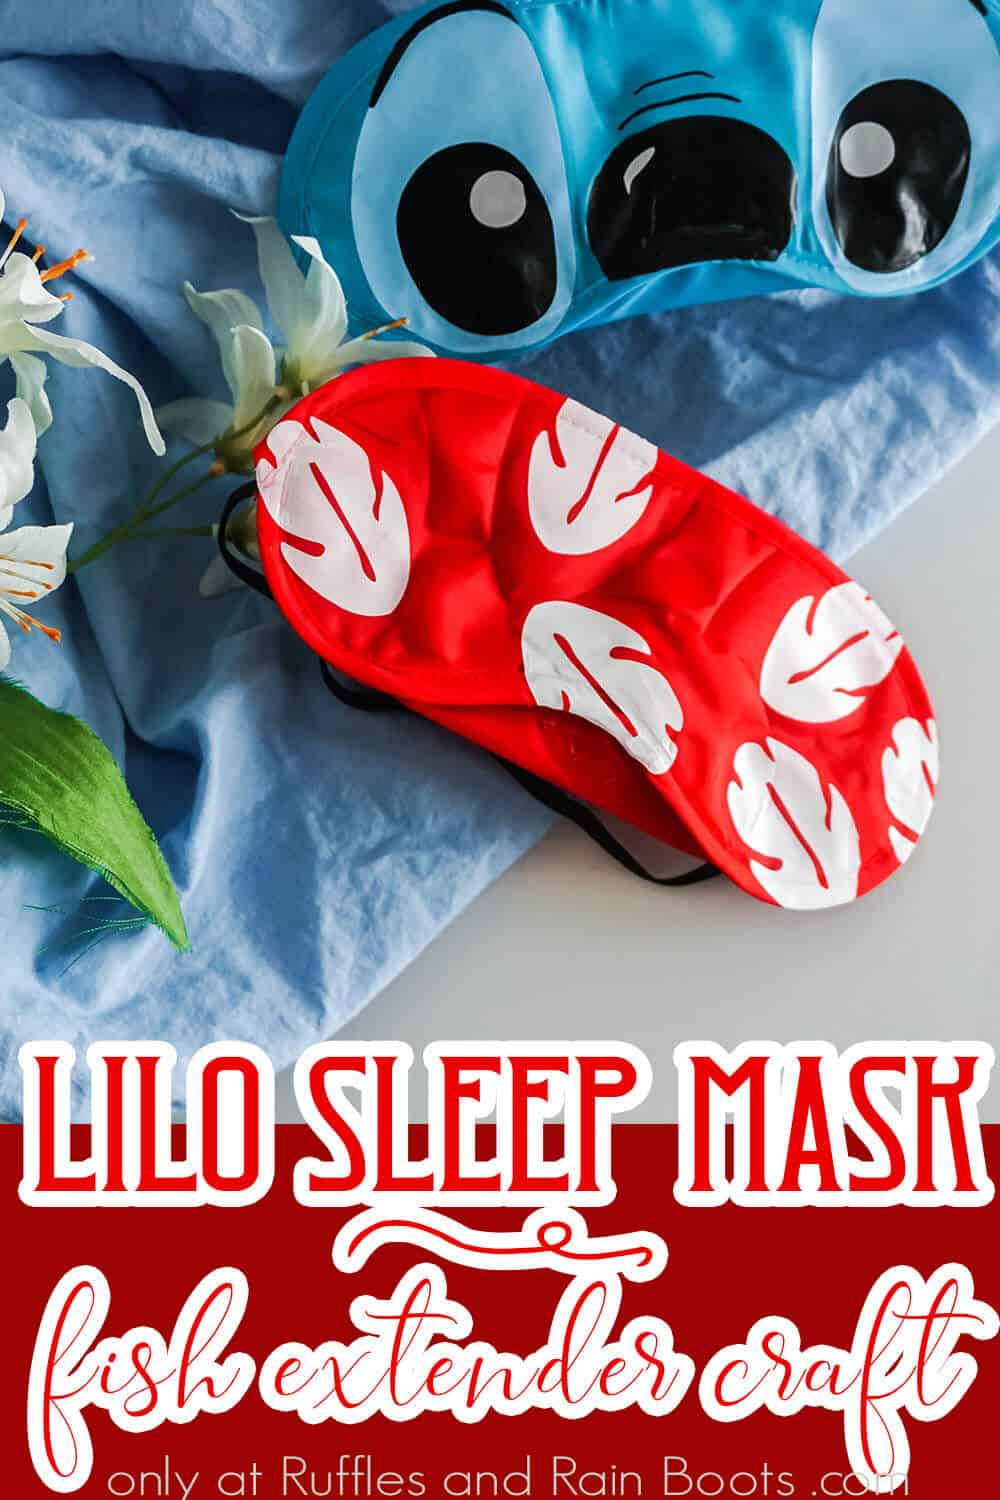 easy disney craft of a lilo eye mask with text which reads lilo sleep mask fish extender craft